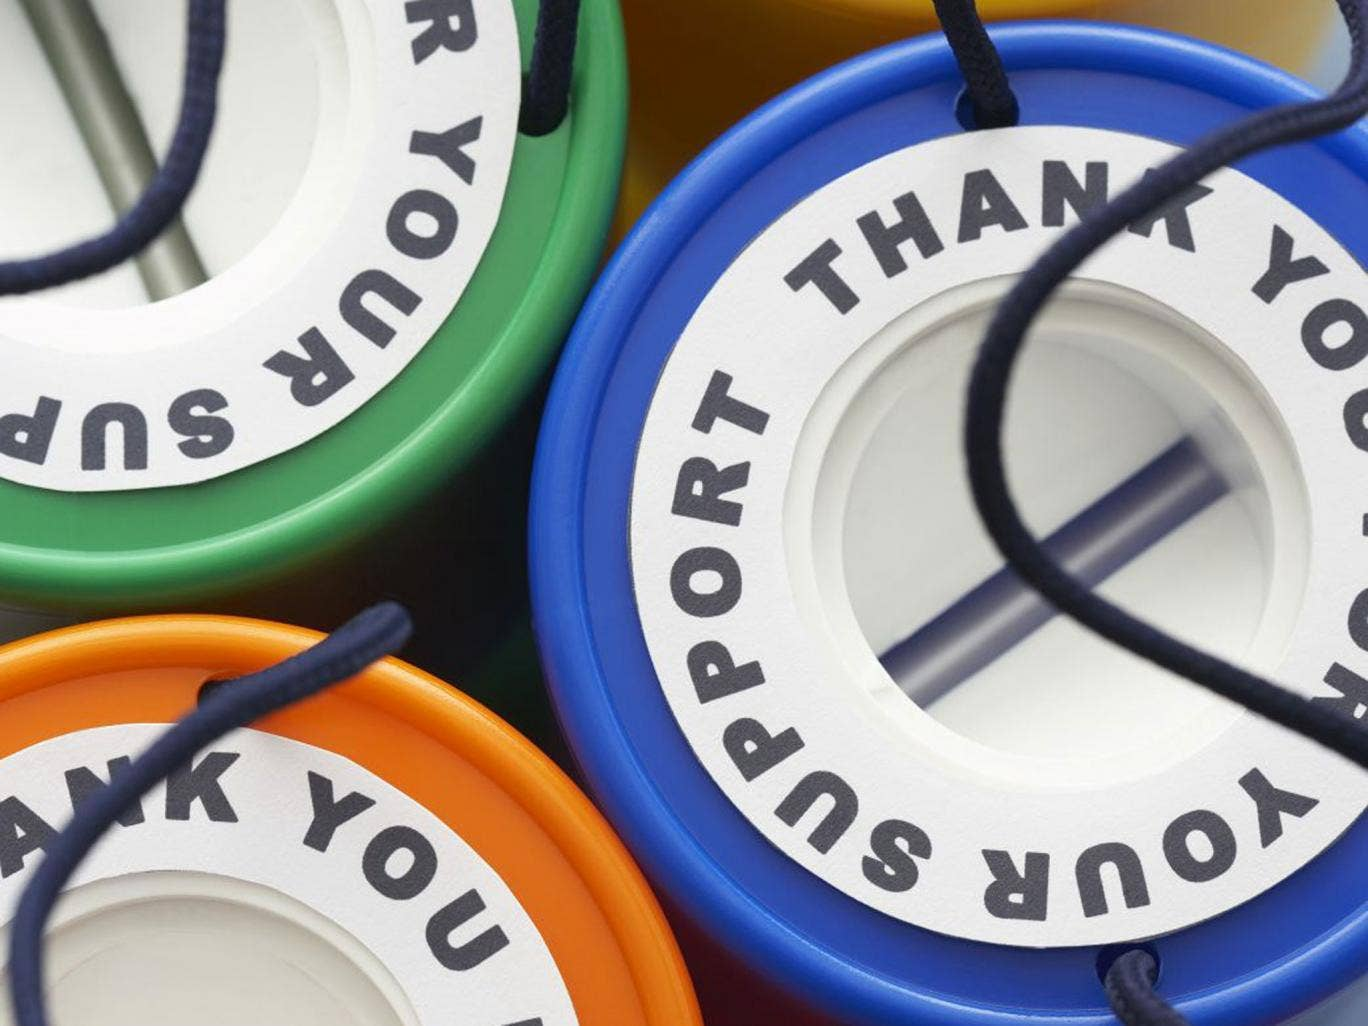 66% The proportion of the time and money given to good causes by nine per cent of the population